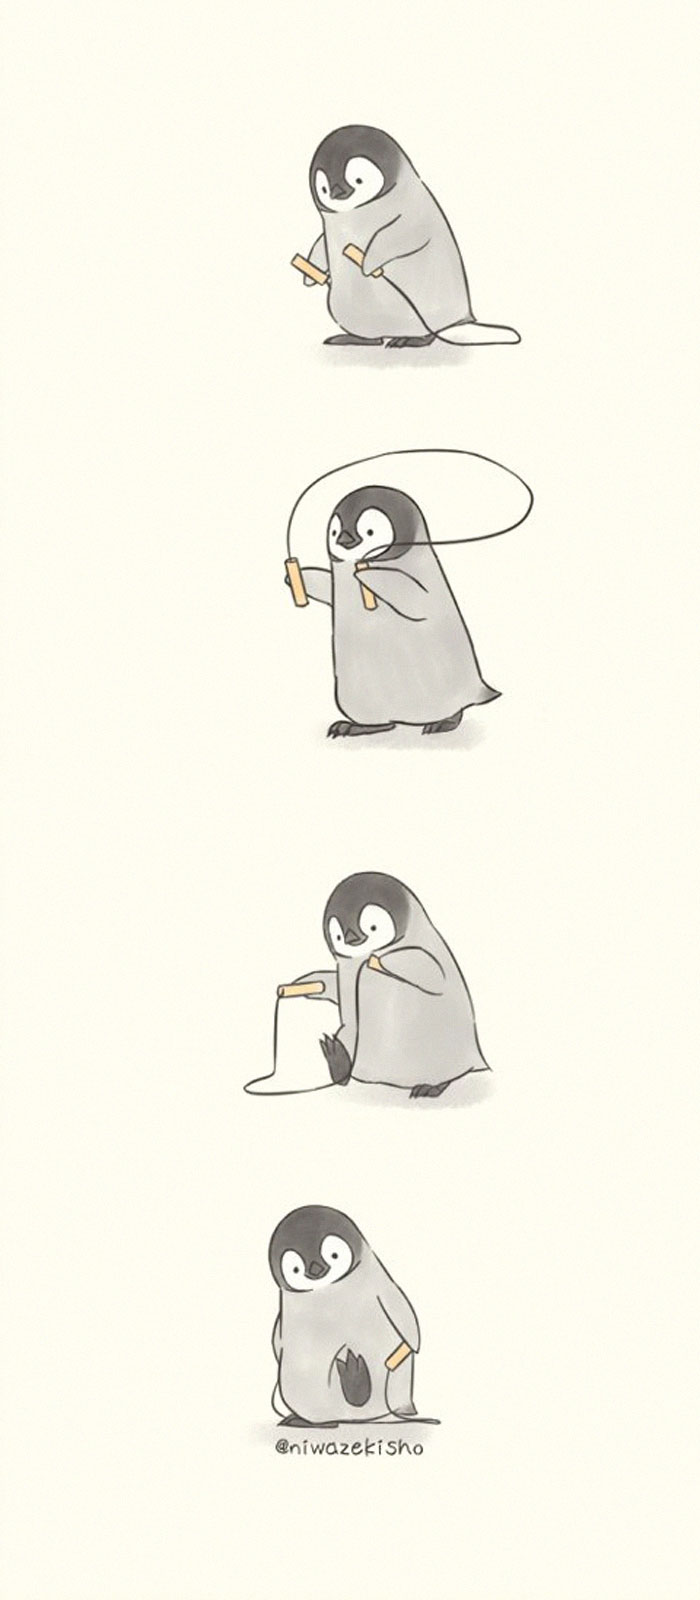 This Artist Draws Comics About A Little Penguin Who Fails At Basic Life Tasks, Except Being Super Cute (30 Pics)